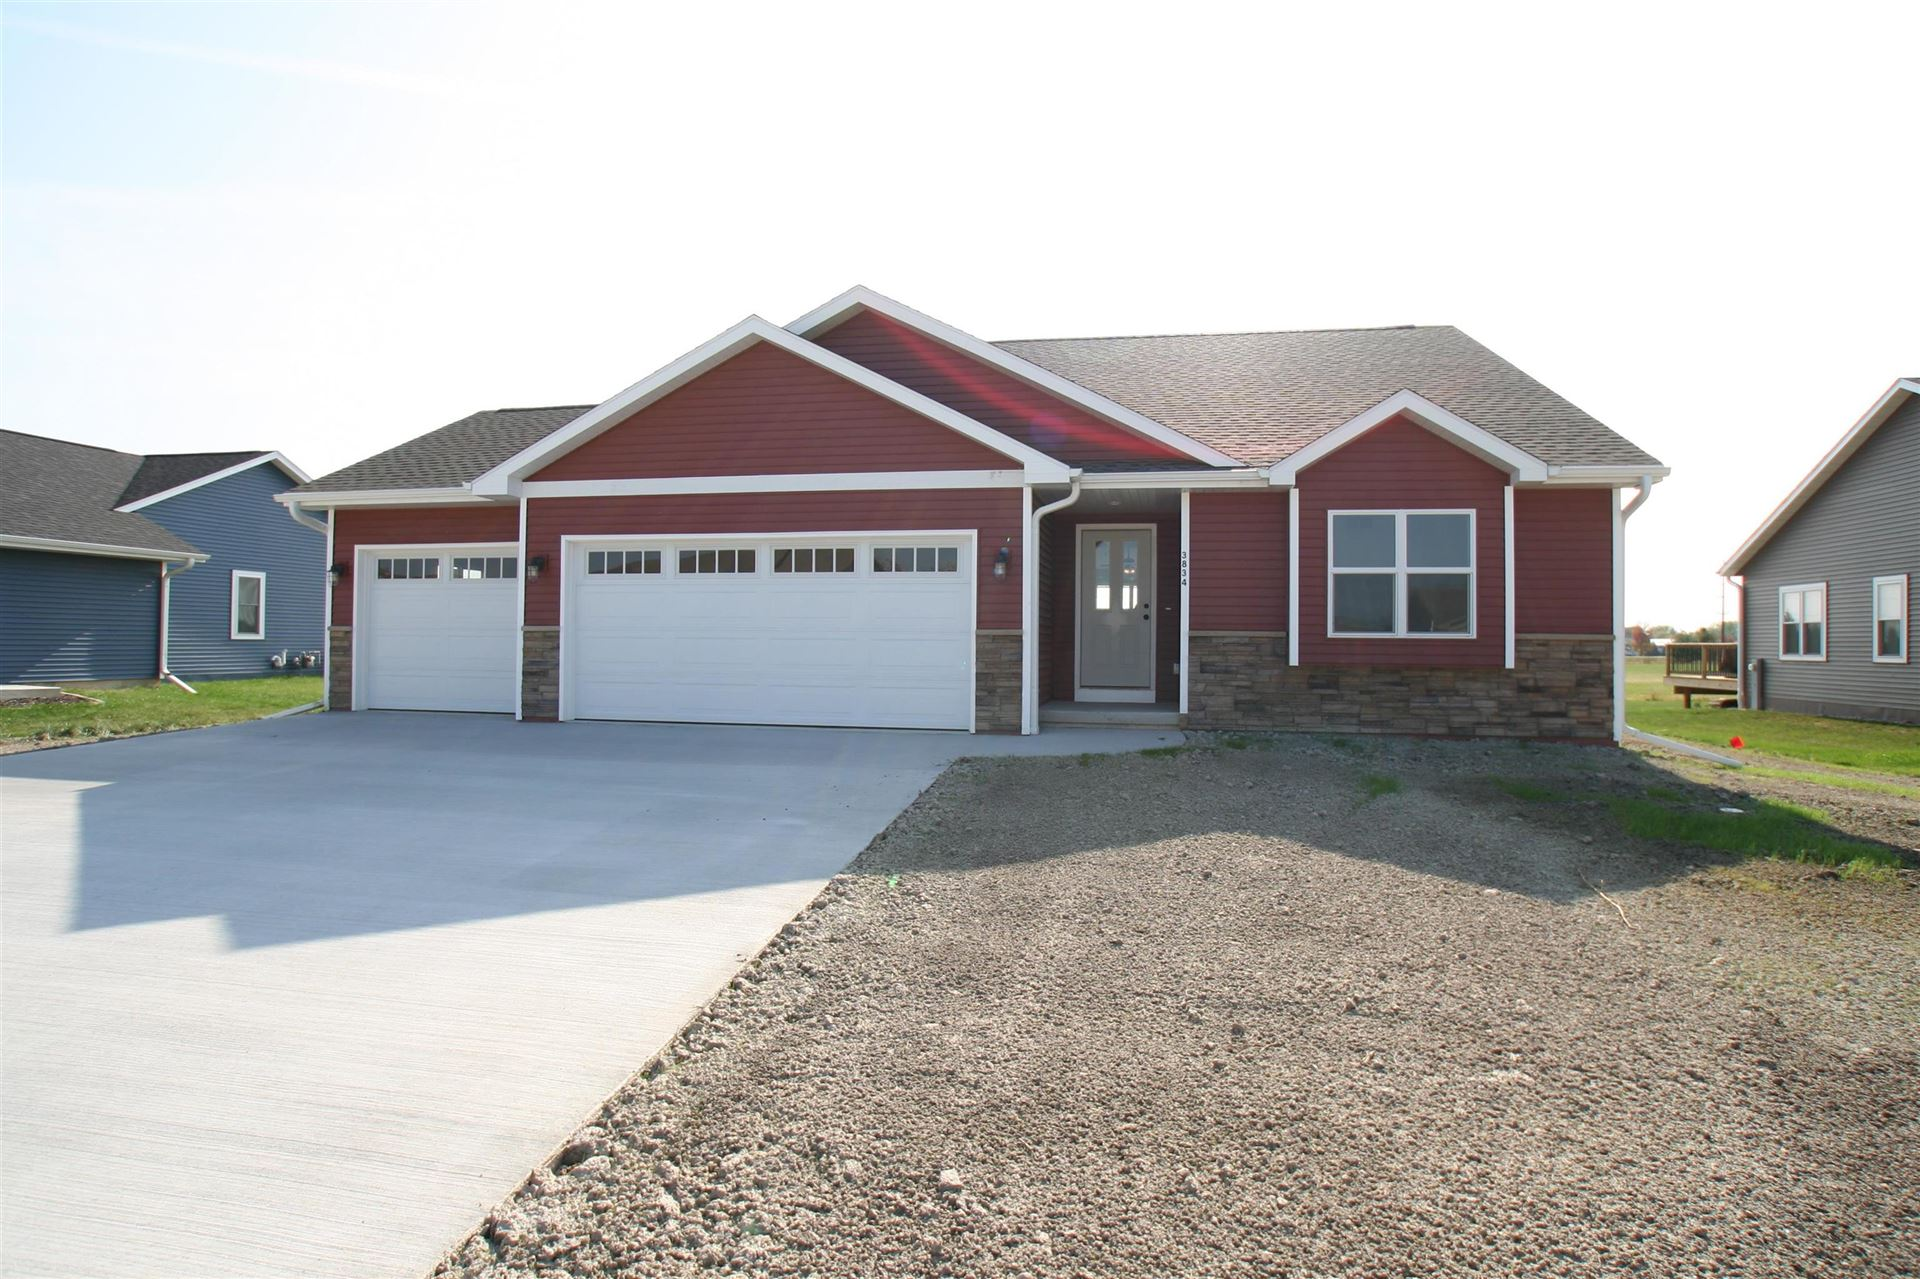 3834 Lucey St, Janesville, WI 53546 - #: 1921450